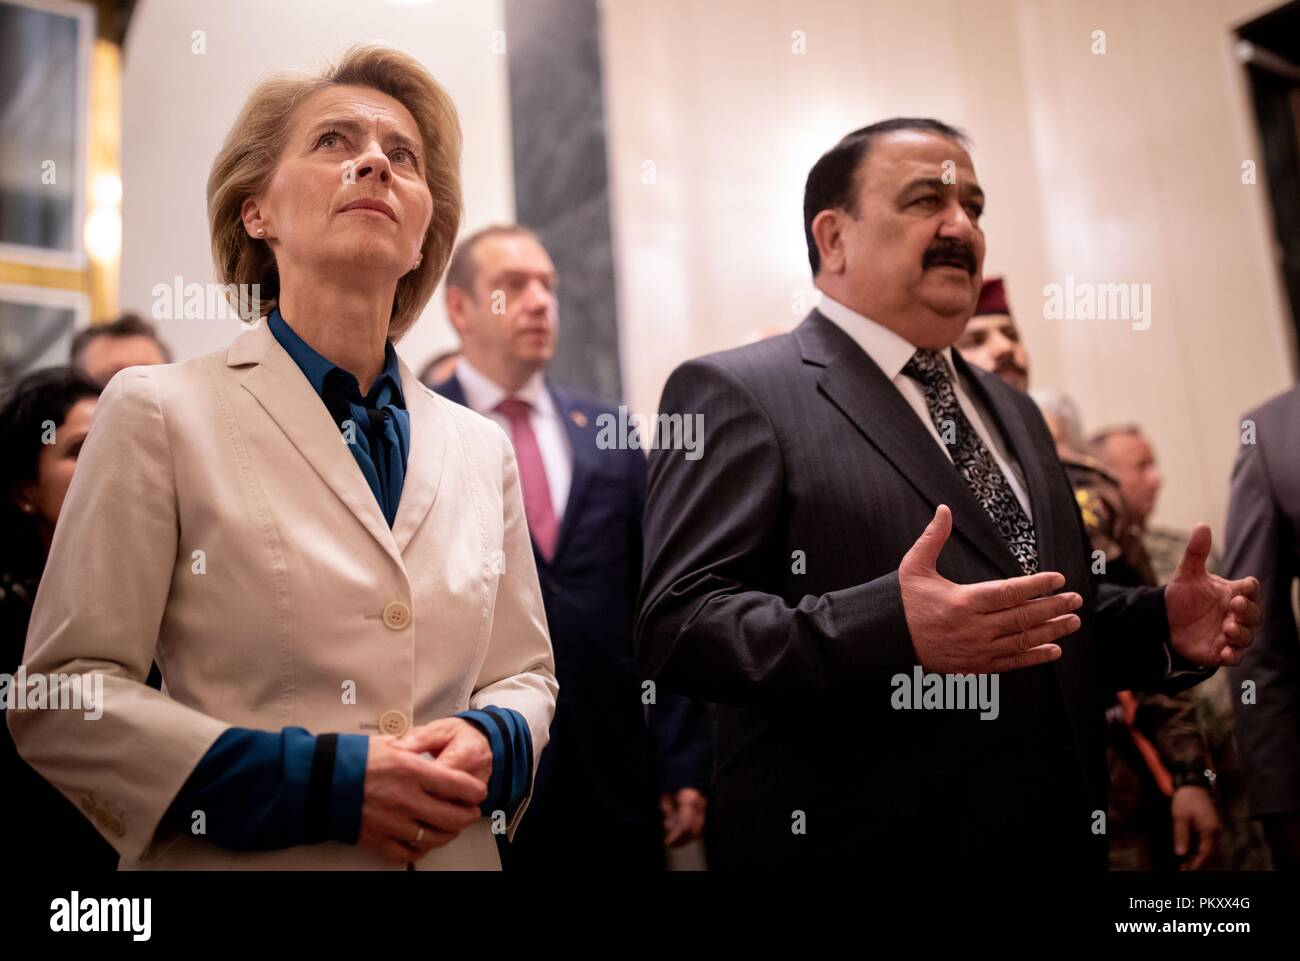 Bagdad, Iraq. 16th Sep, 2018. Ursula von der Leyen (CDU), Federal Minister of Defence, will be received by Al Hayali, Iraqi Minister of Defence. The minister is in Baghdad for political talks. Credit: Kay Nietfeld/dpa/Alamy Live News Stock Photo